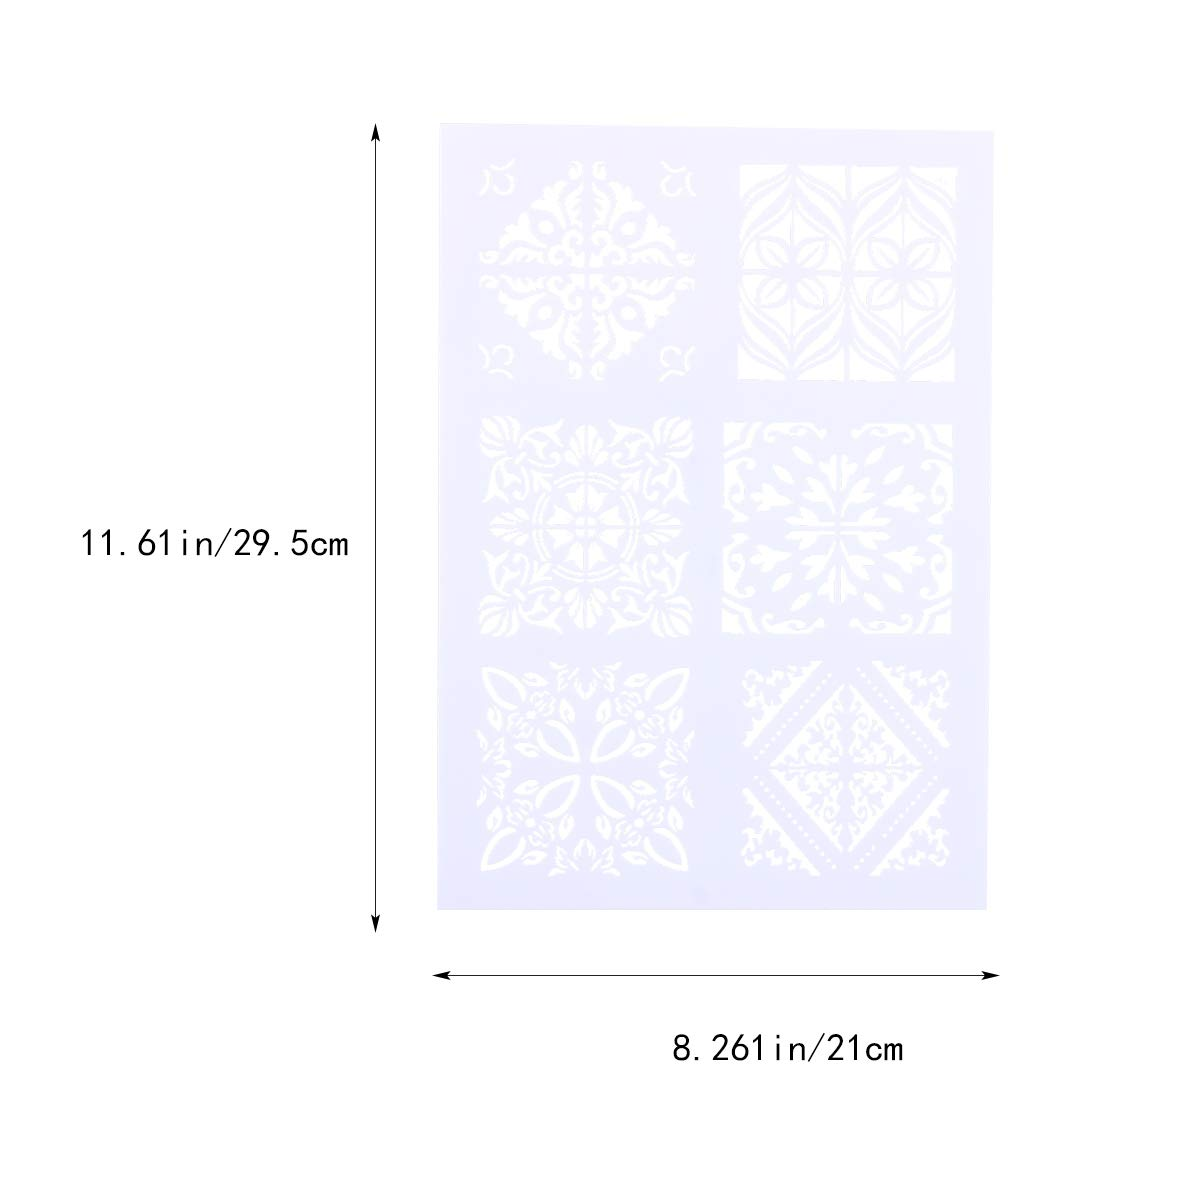 White Square Hollow out Painting Stencils DIY Craft Layering Stencils Plastic Painting Stencils